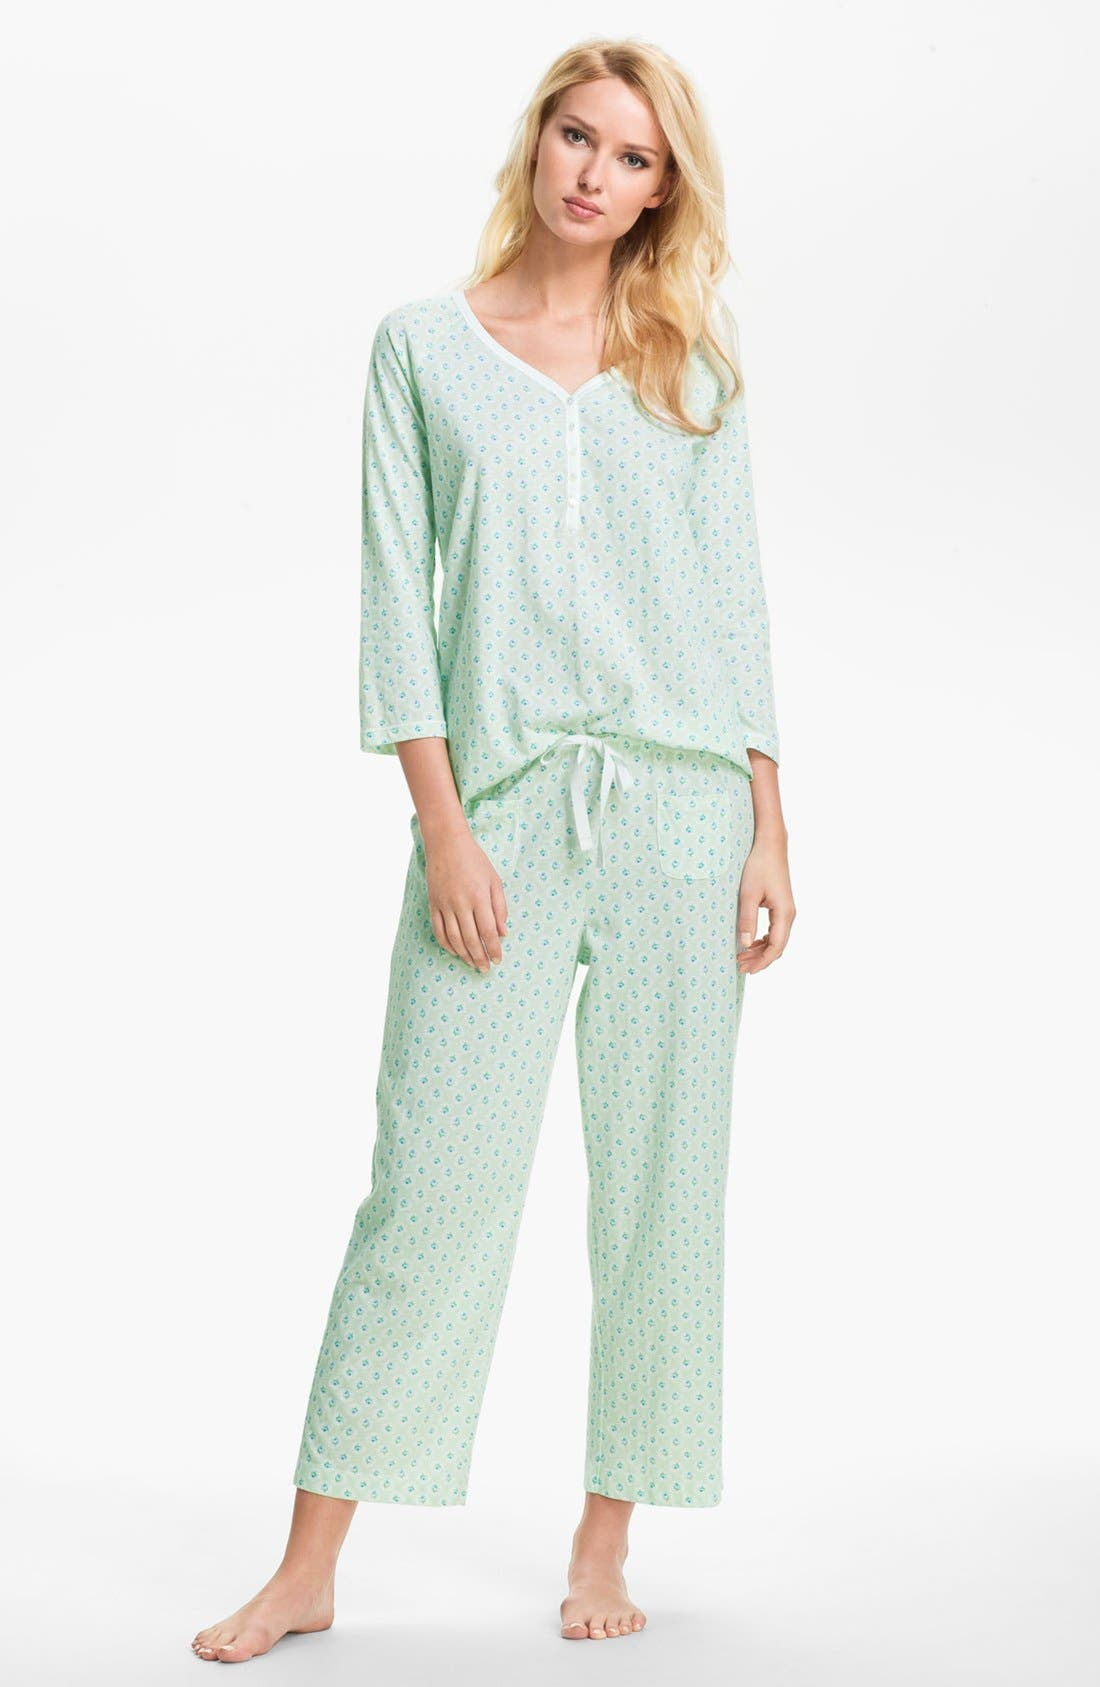 Alternate Image 1 Selected - Carole Hochman Designs 'Vintage Rose' Pajamas